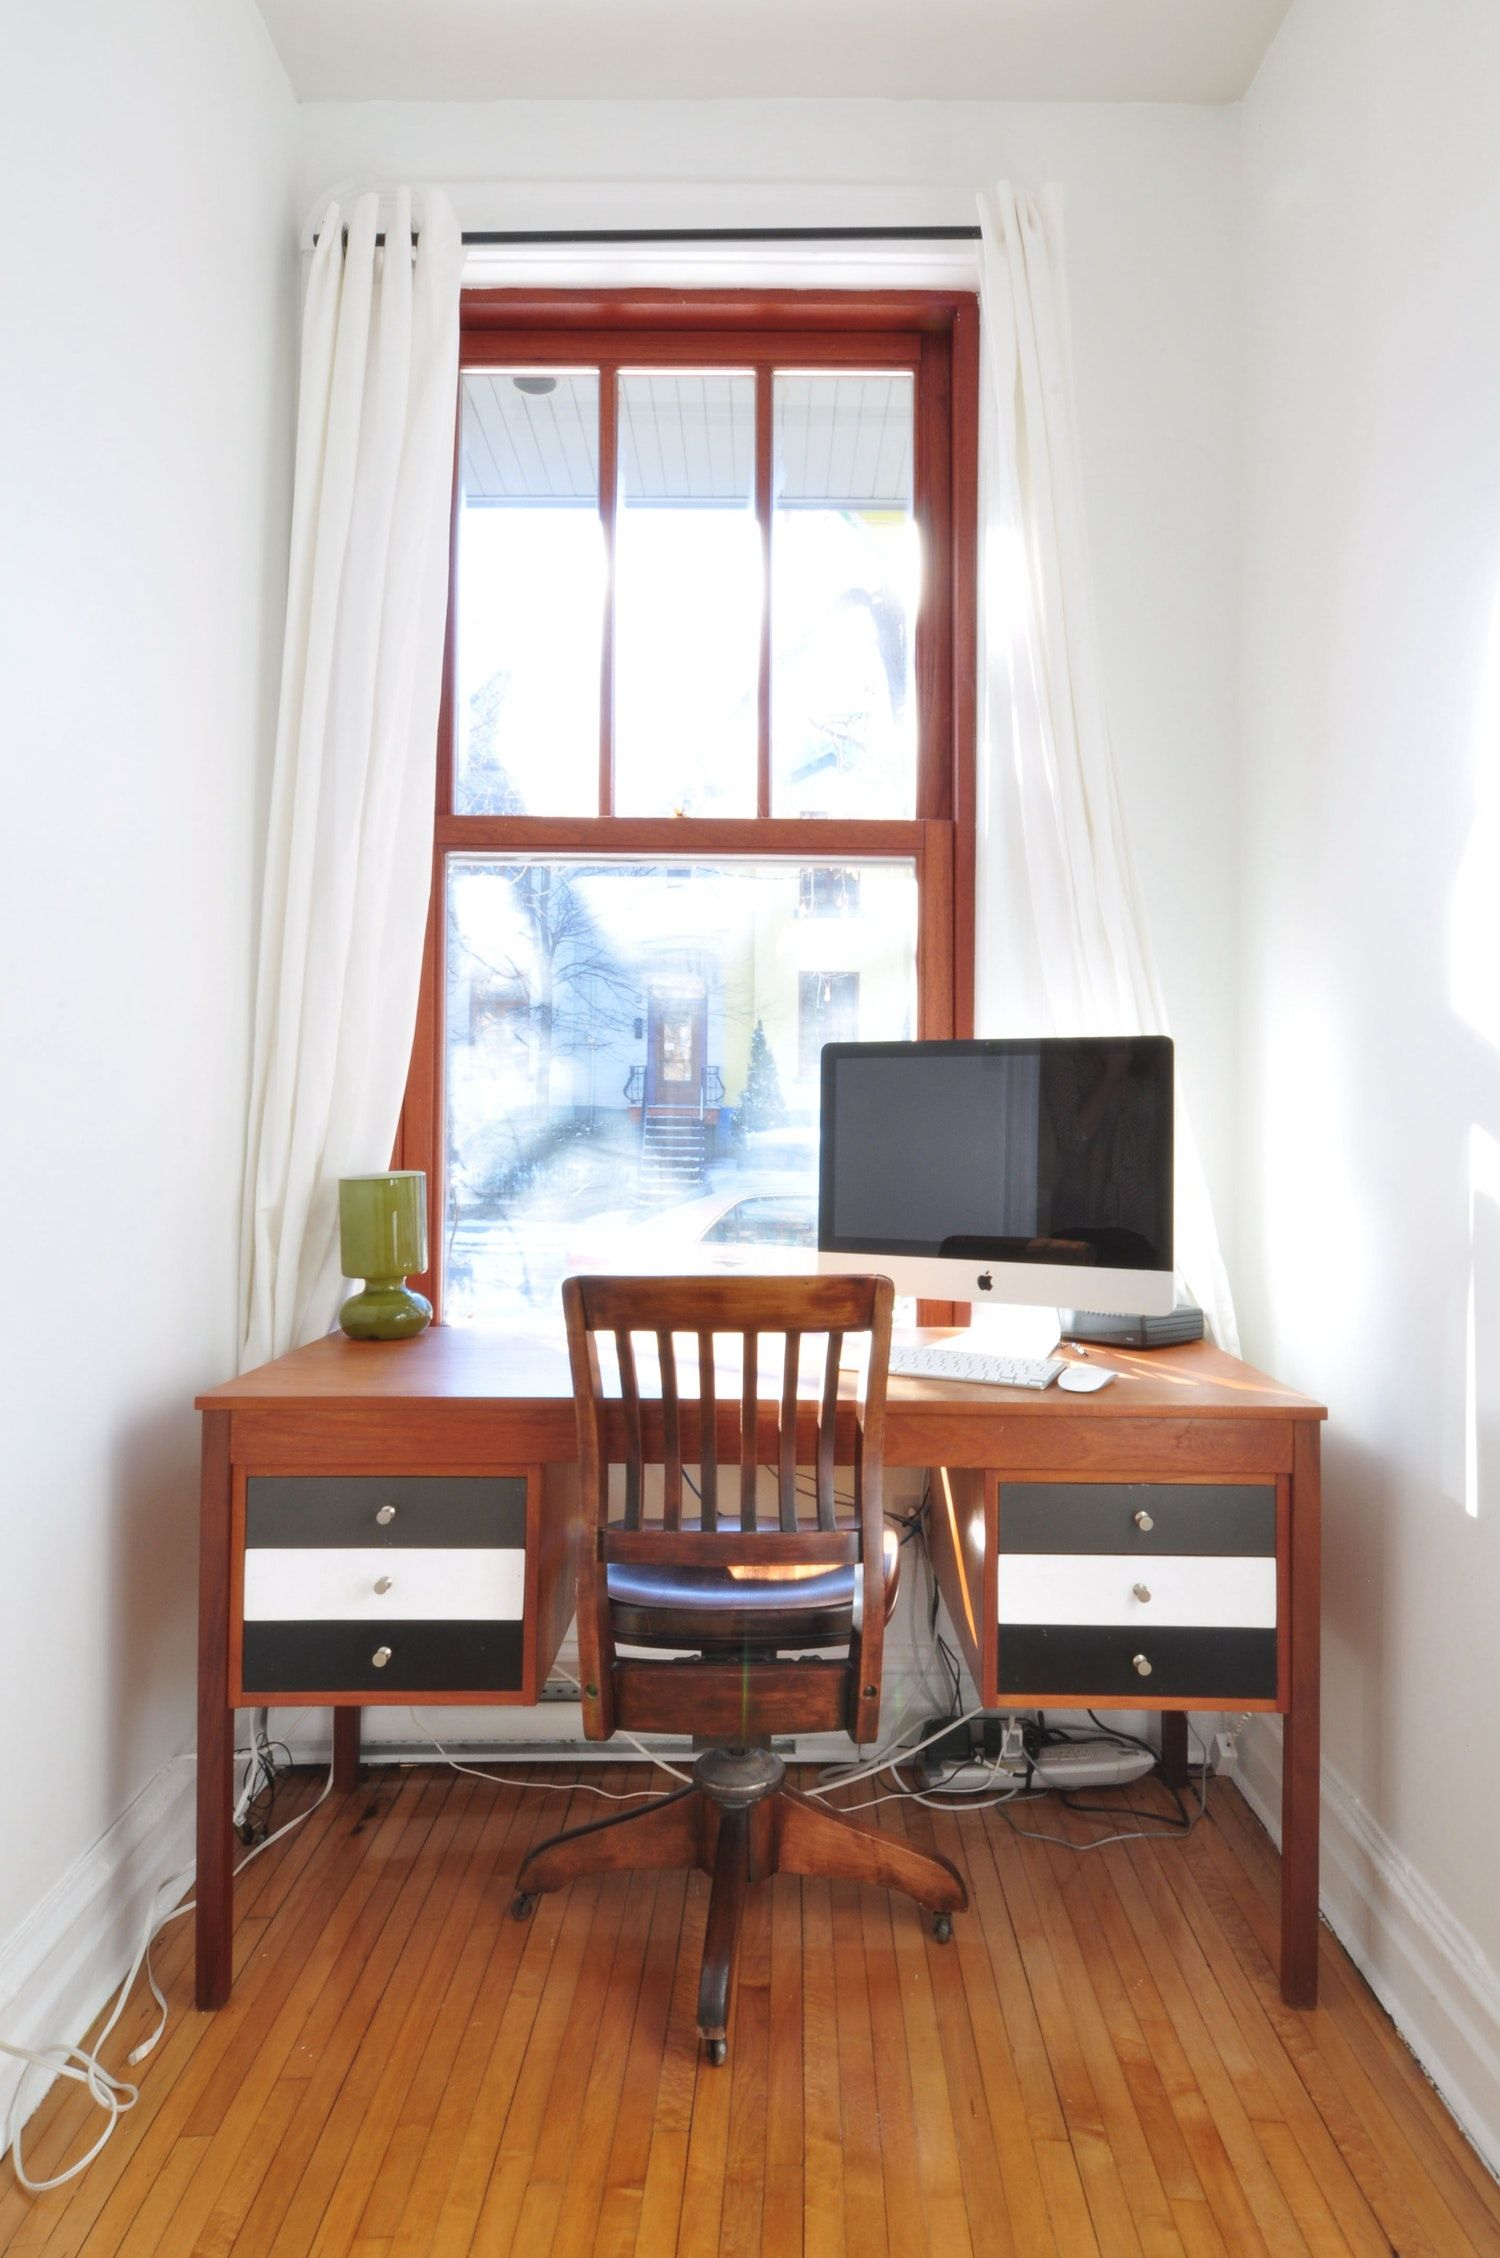 Working From Home? 10 Things You Can Do to Keep Work and Home Separate